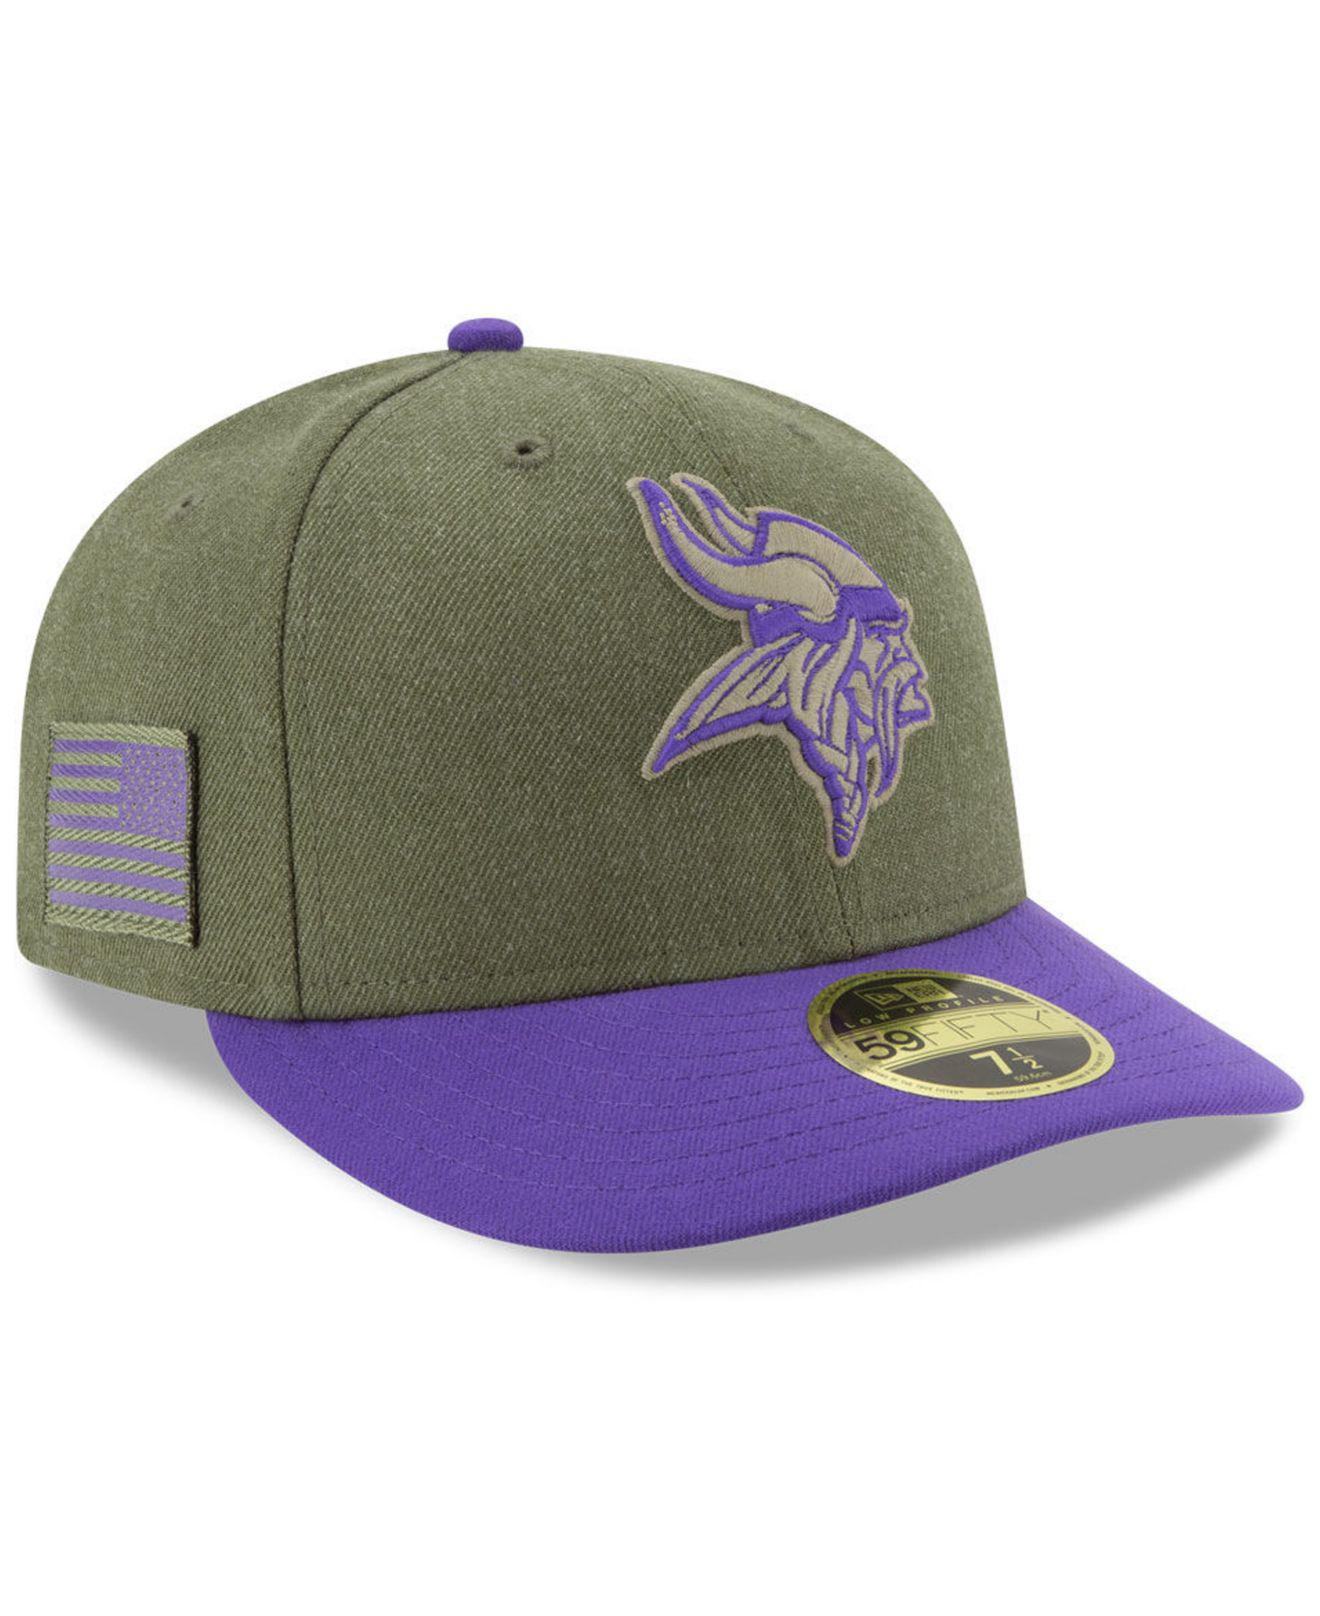 097341ed153 Lyst - KTZ Minnesota Vikings Salute To Service Low Profile 59fifty ...